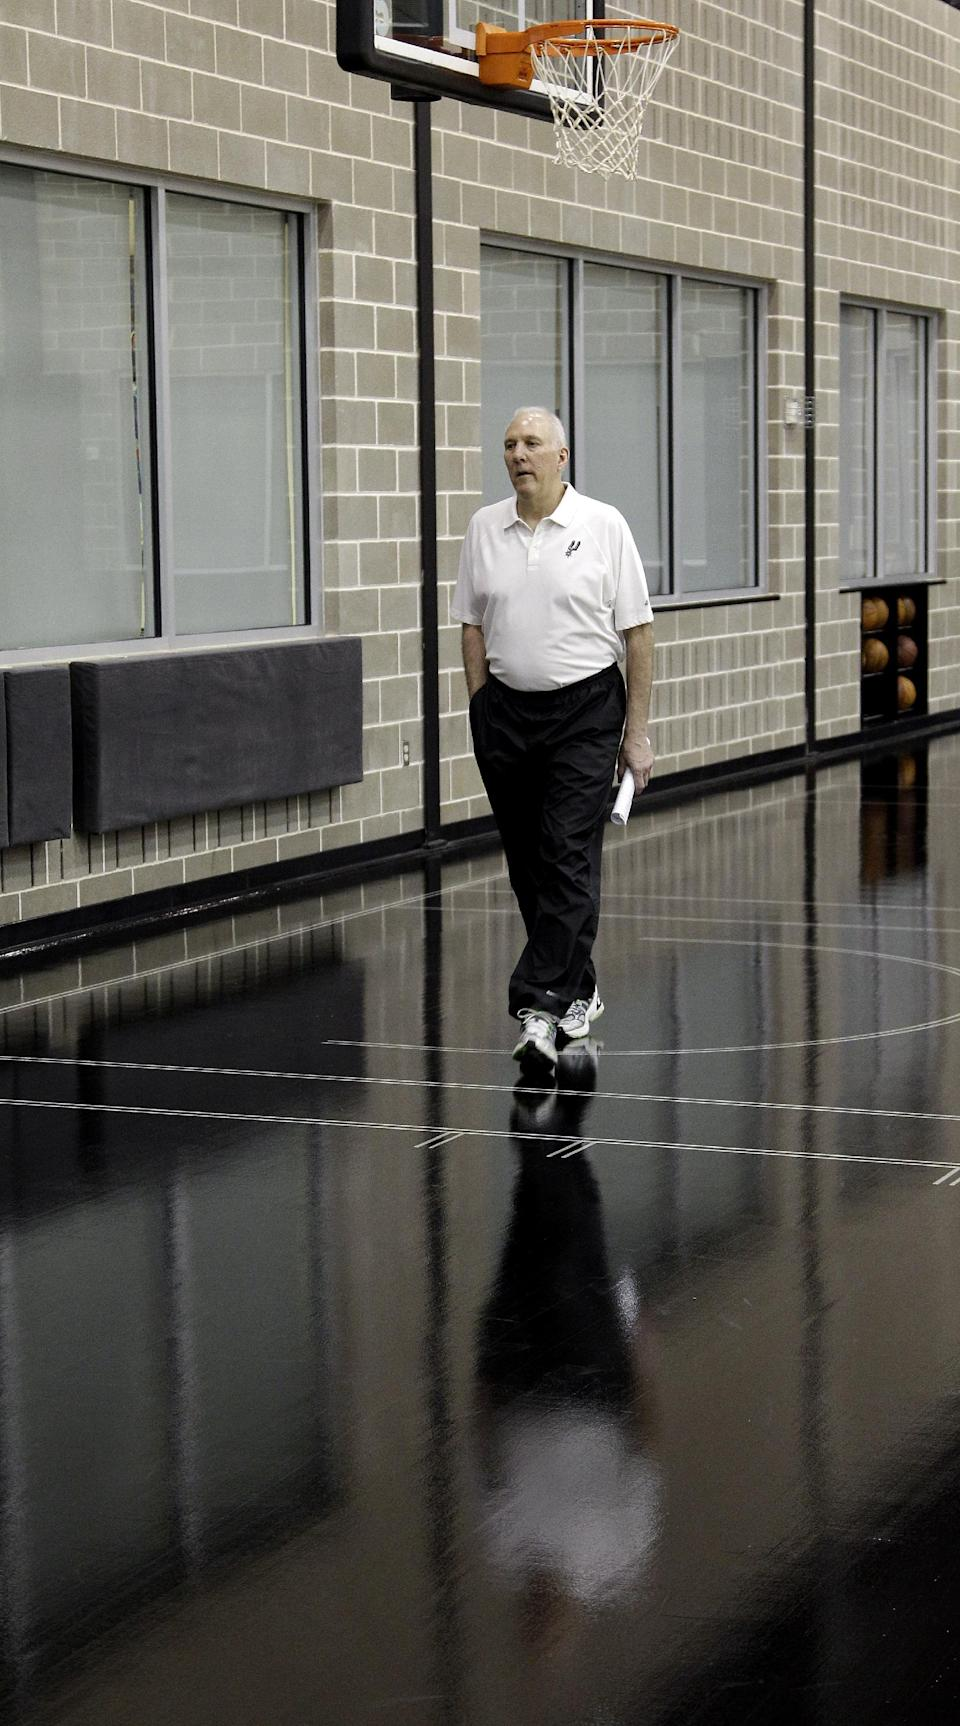 San Antonio Spurs head basketball coach Gregg Popovich arrives for a news conference where he was named the NBA's Coach of the Year at the team's basketball practice facility, Tuesday, May 1, 2012, in San Antonio.  (AP Photo/Eric Gay)